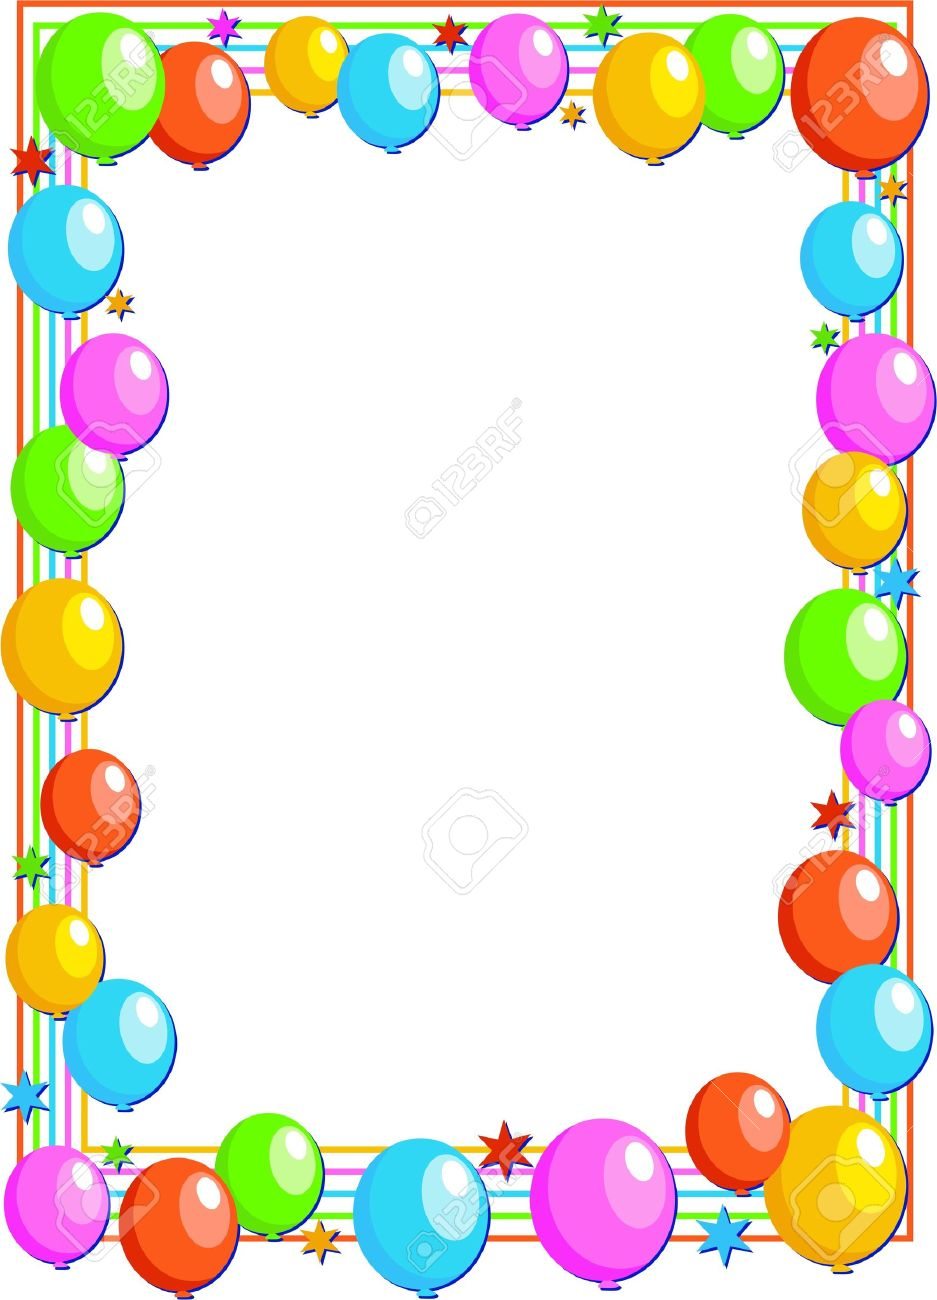 birthday border design ; 4599115-colourful-birthday-party-balloon-page-border-design-